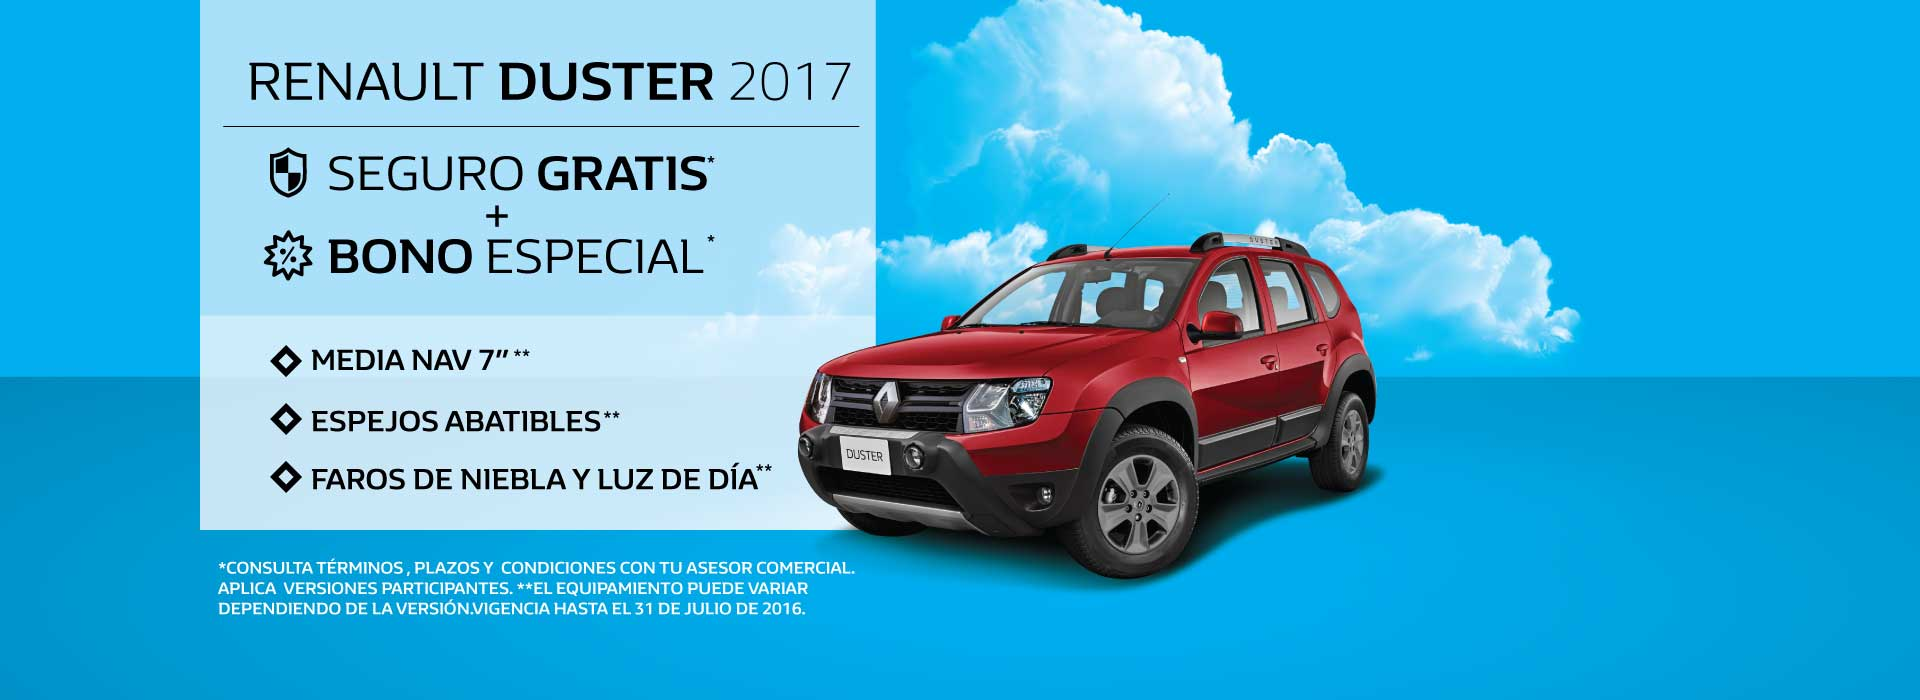 renault, renault duster, nissan march